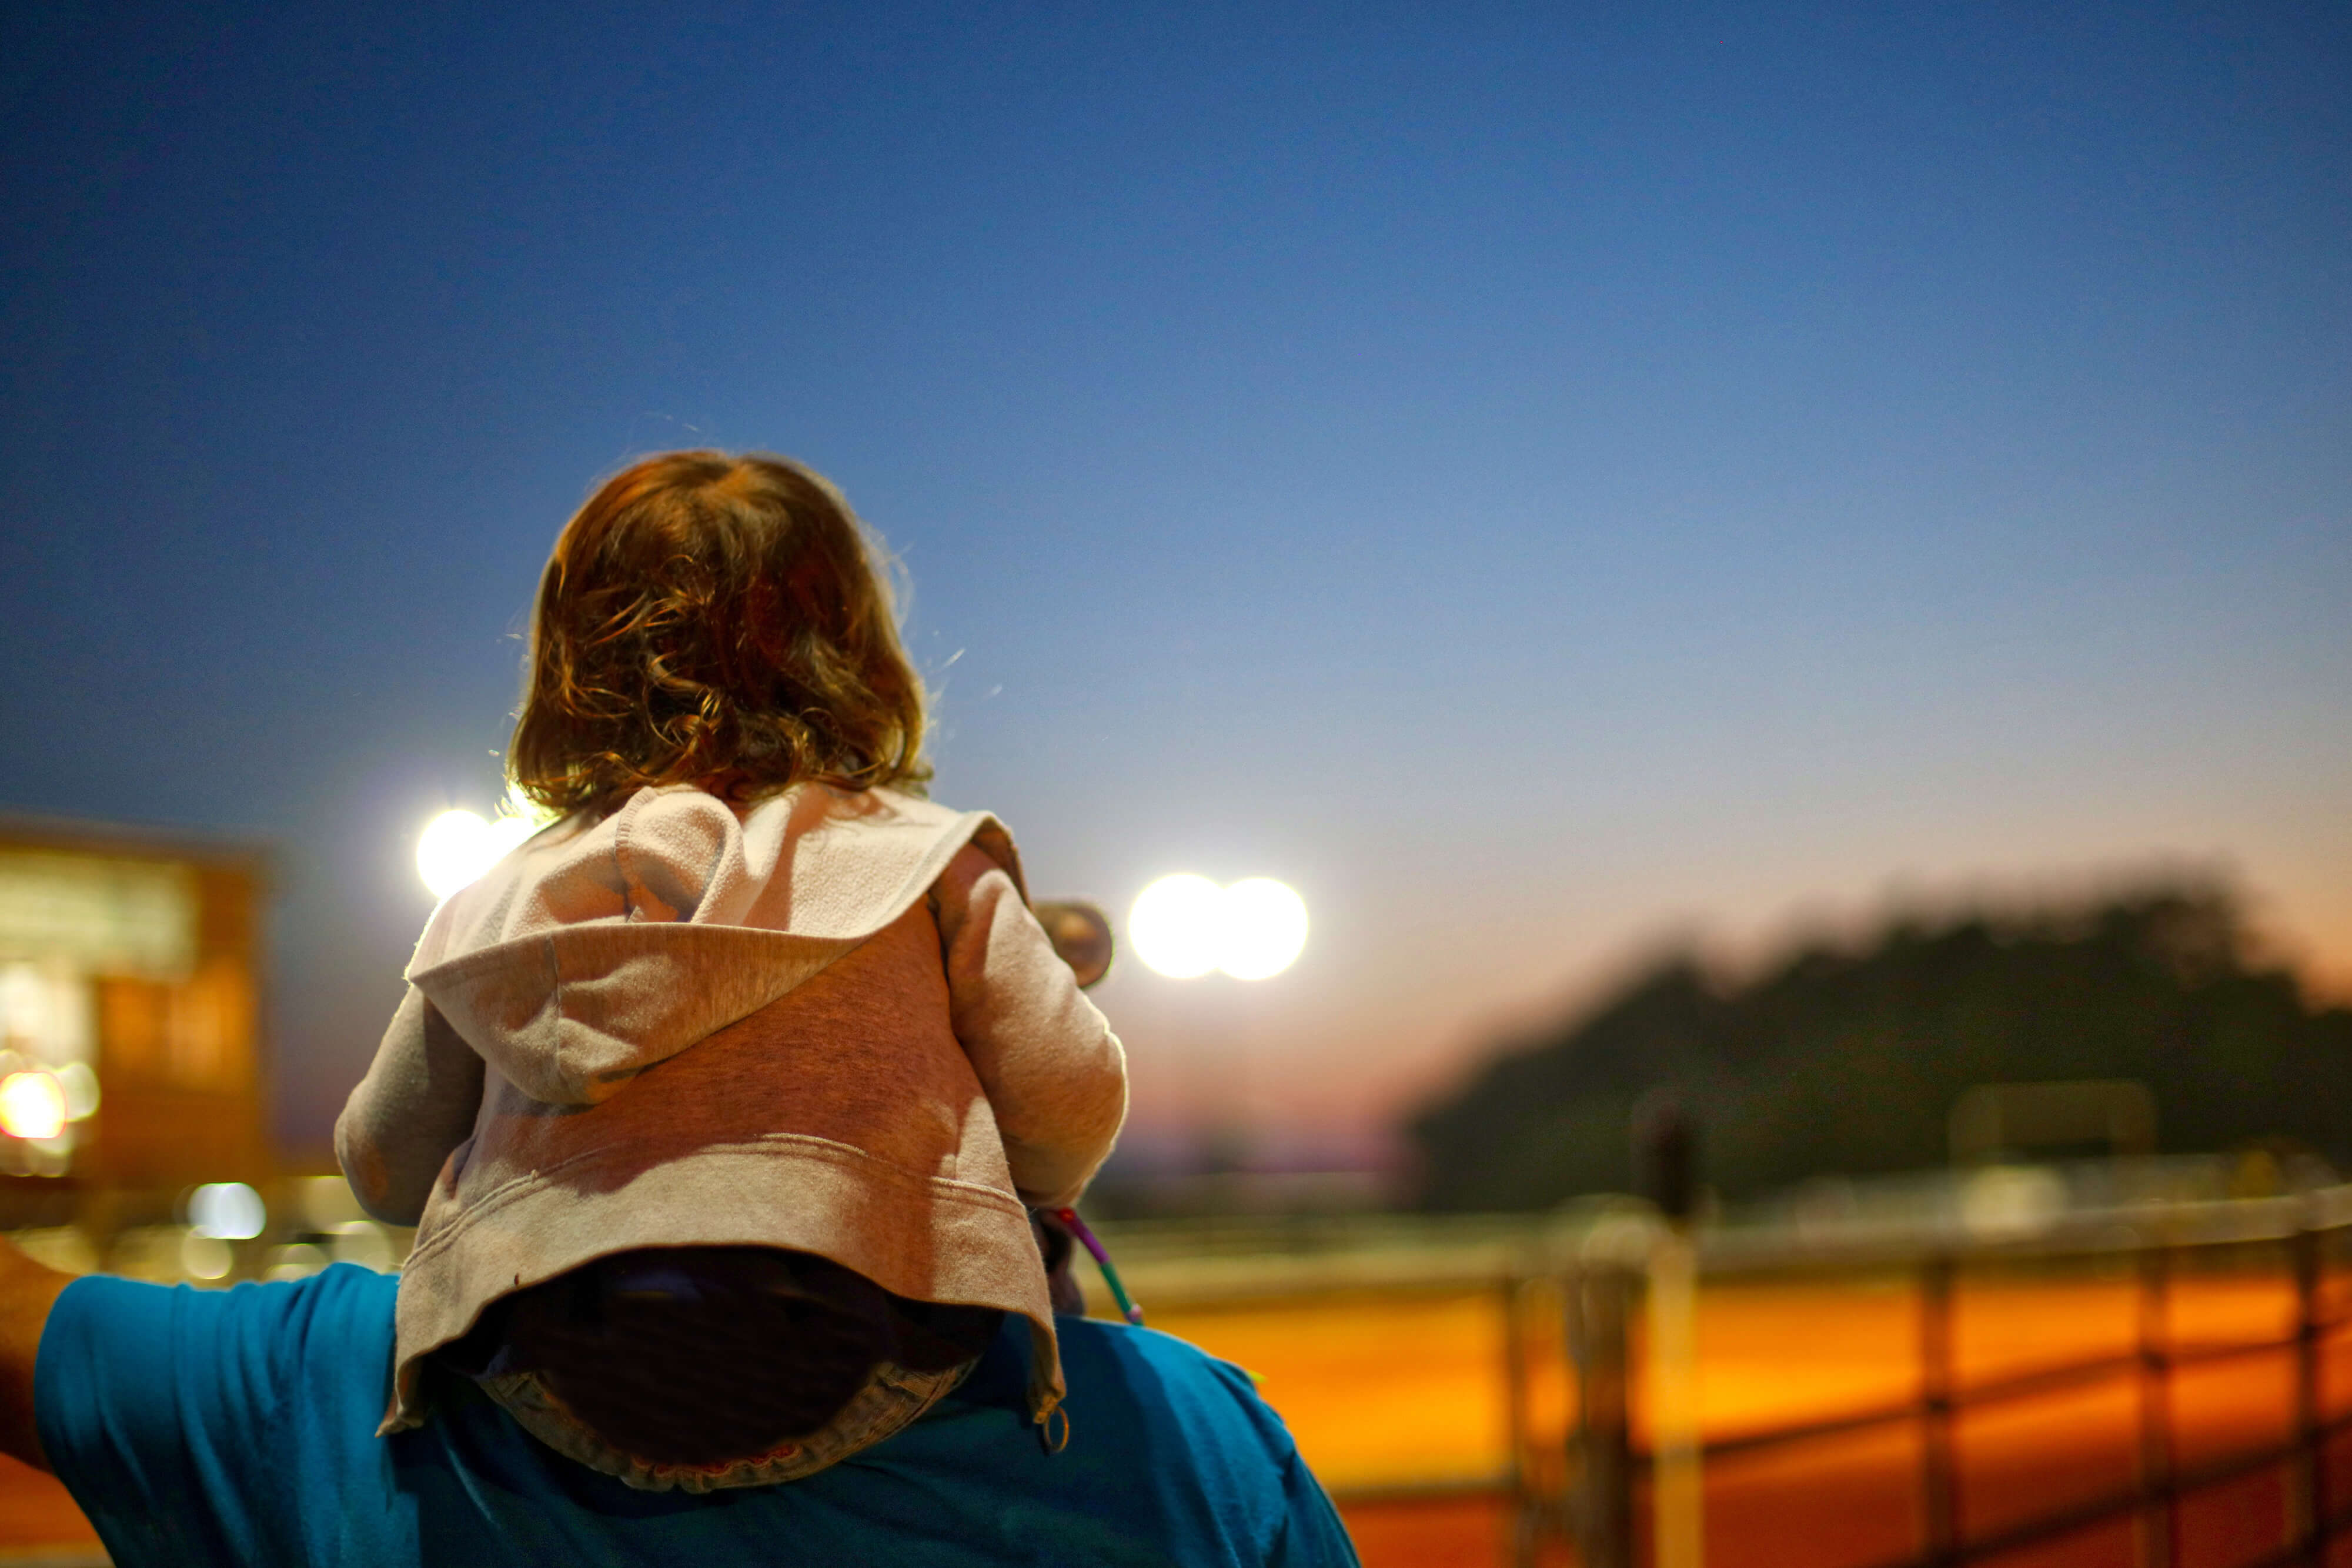 Cowboy Rodeo in River Ranch, FL | Westgate River Ranch Resort & Rodeo | Westgate Resorts